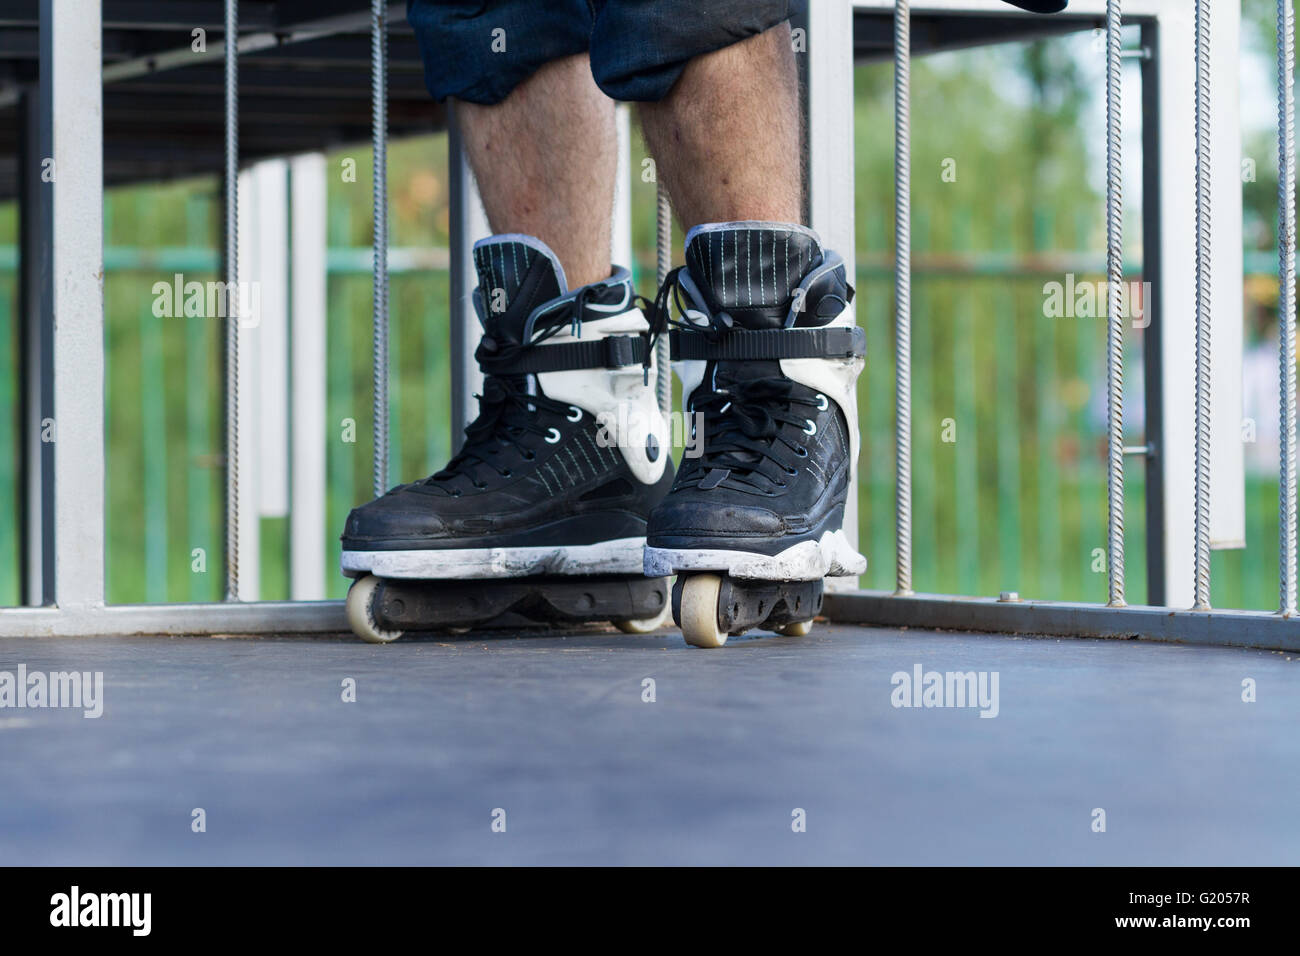 Inline Skates And Jump Stock Photos 11 Aggressive For Extreme Tricks In Focus Athlete Is Standing On Top Of The